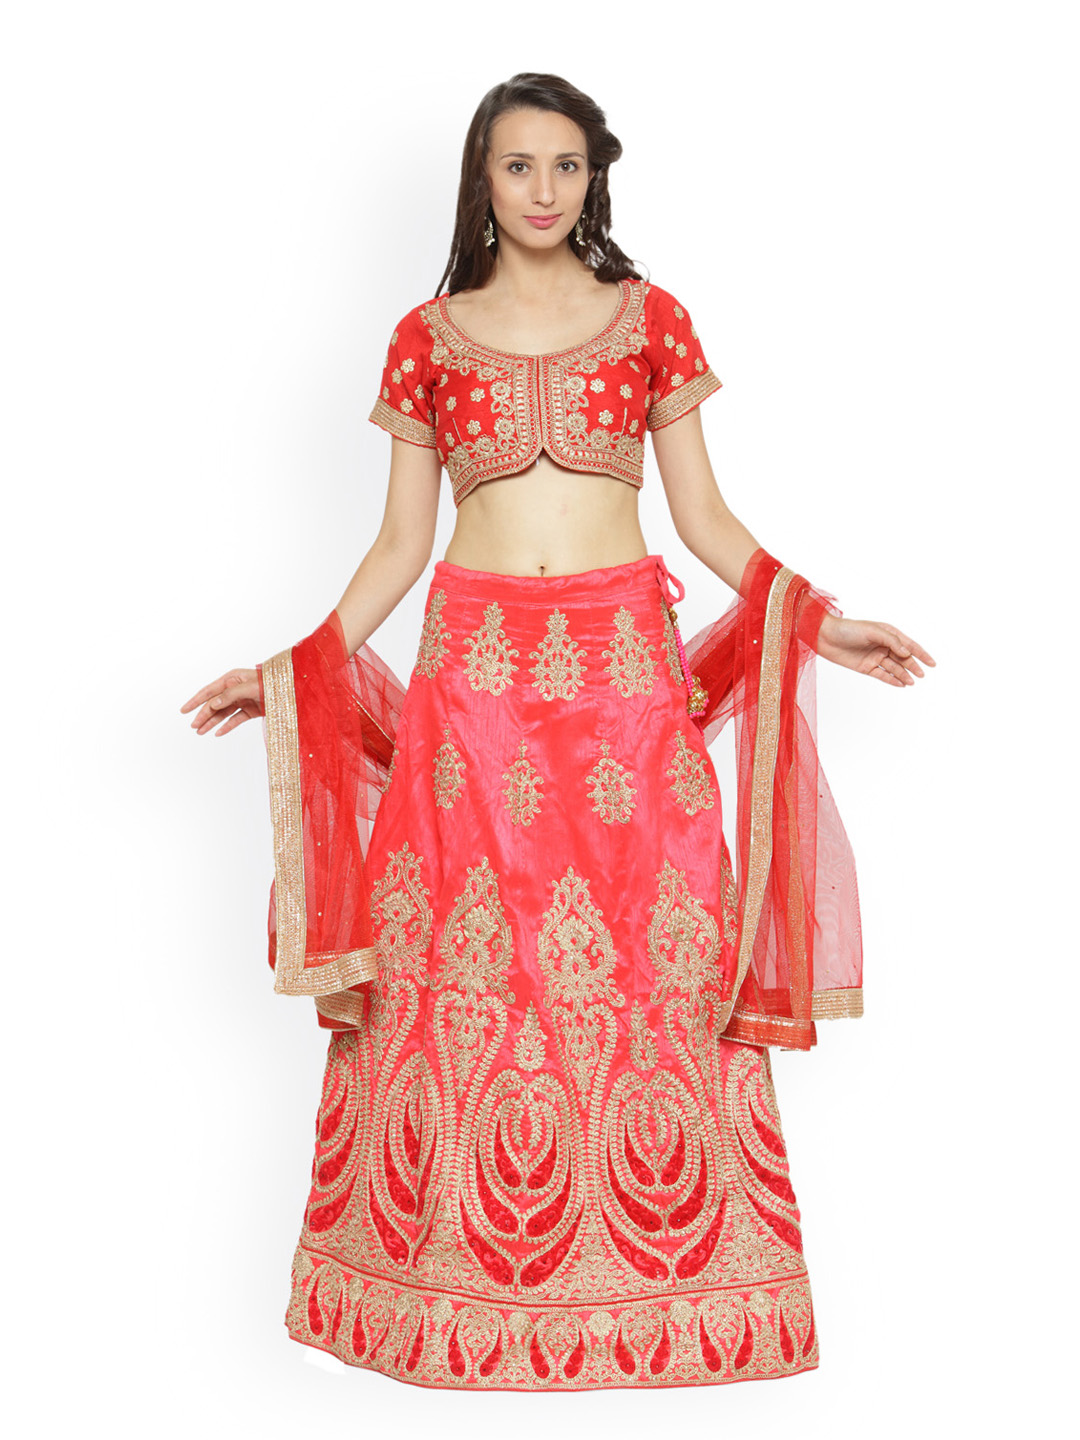 Chhabra 555 Coral Red Embroidered Art Silk Lehenga Choli with Dupatta Price in India